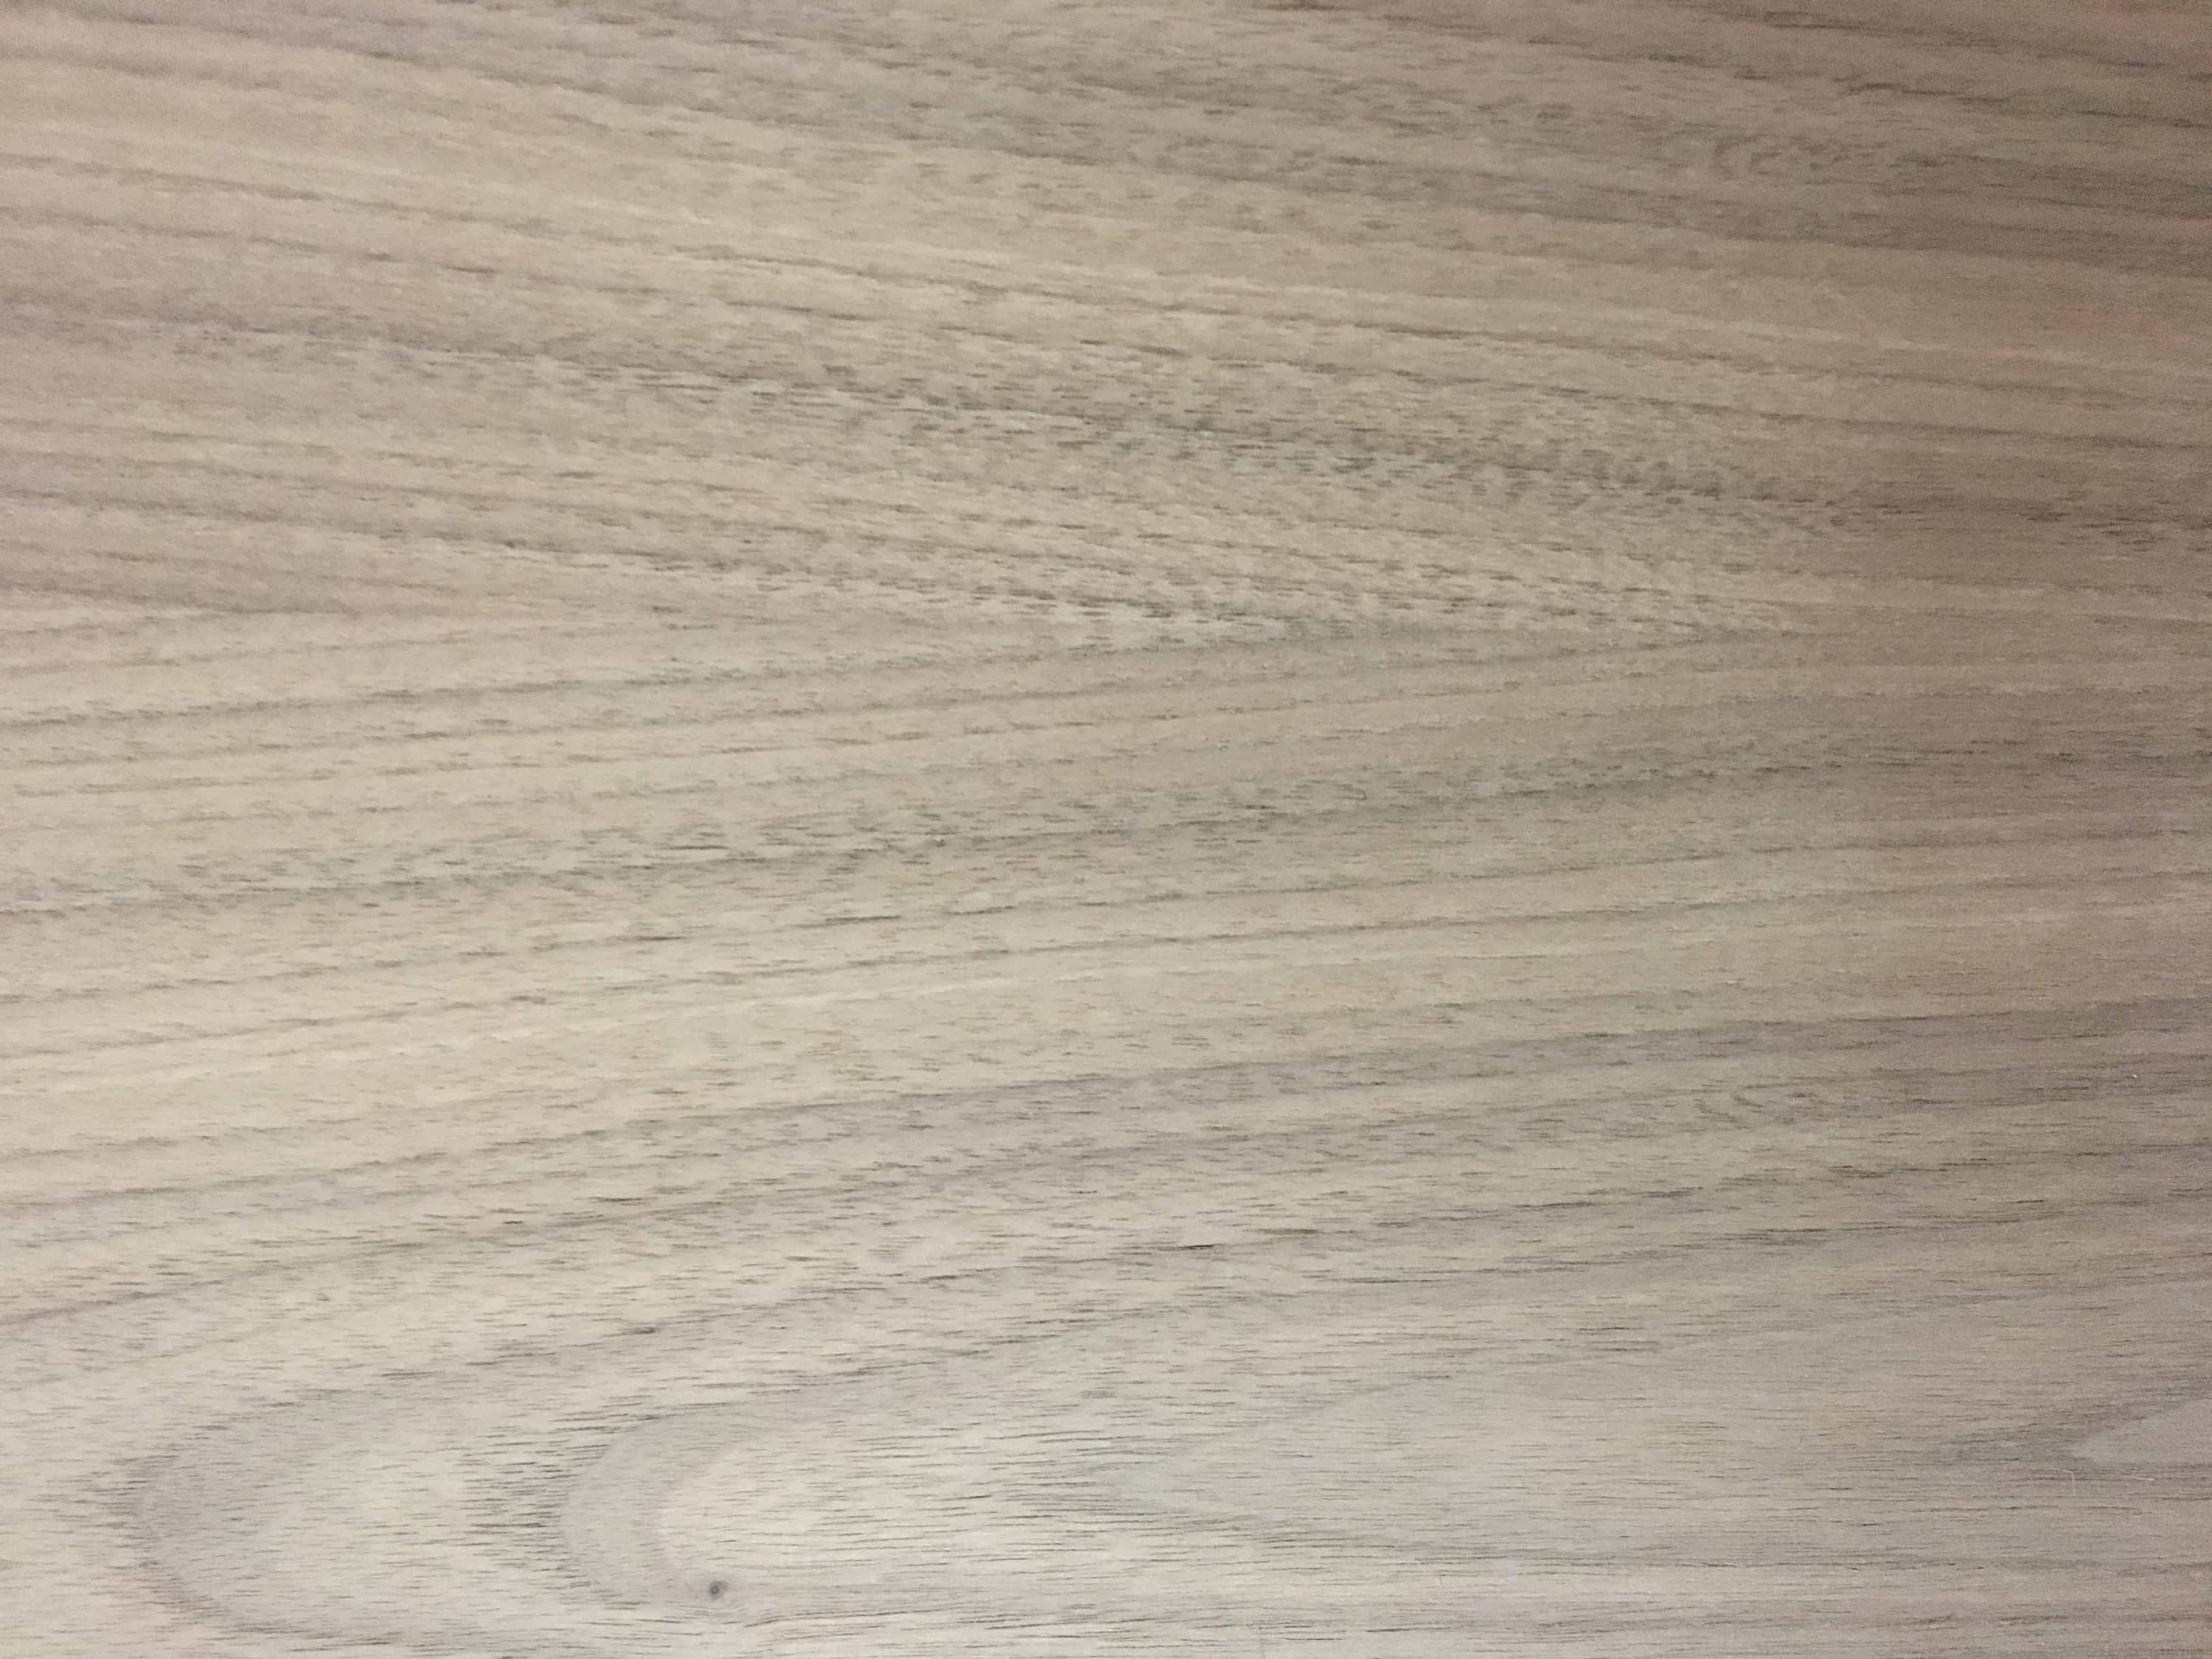 Walnut Hardwood Plywood